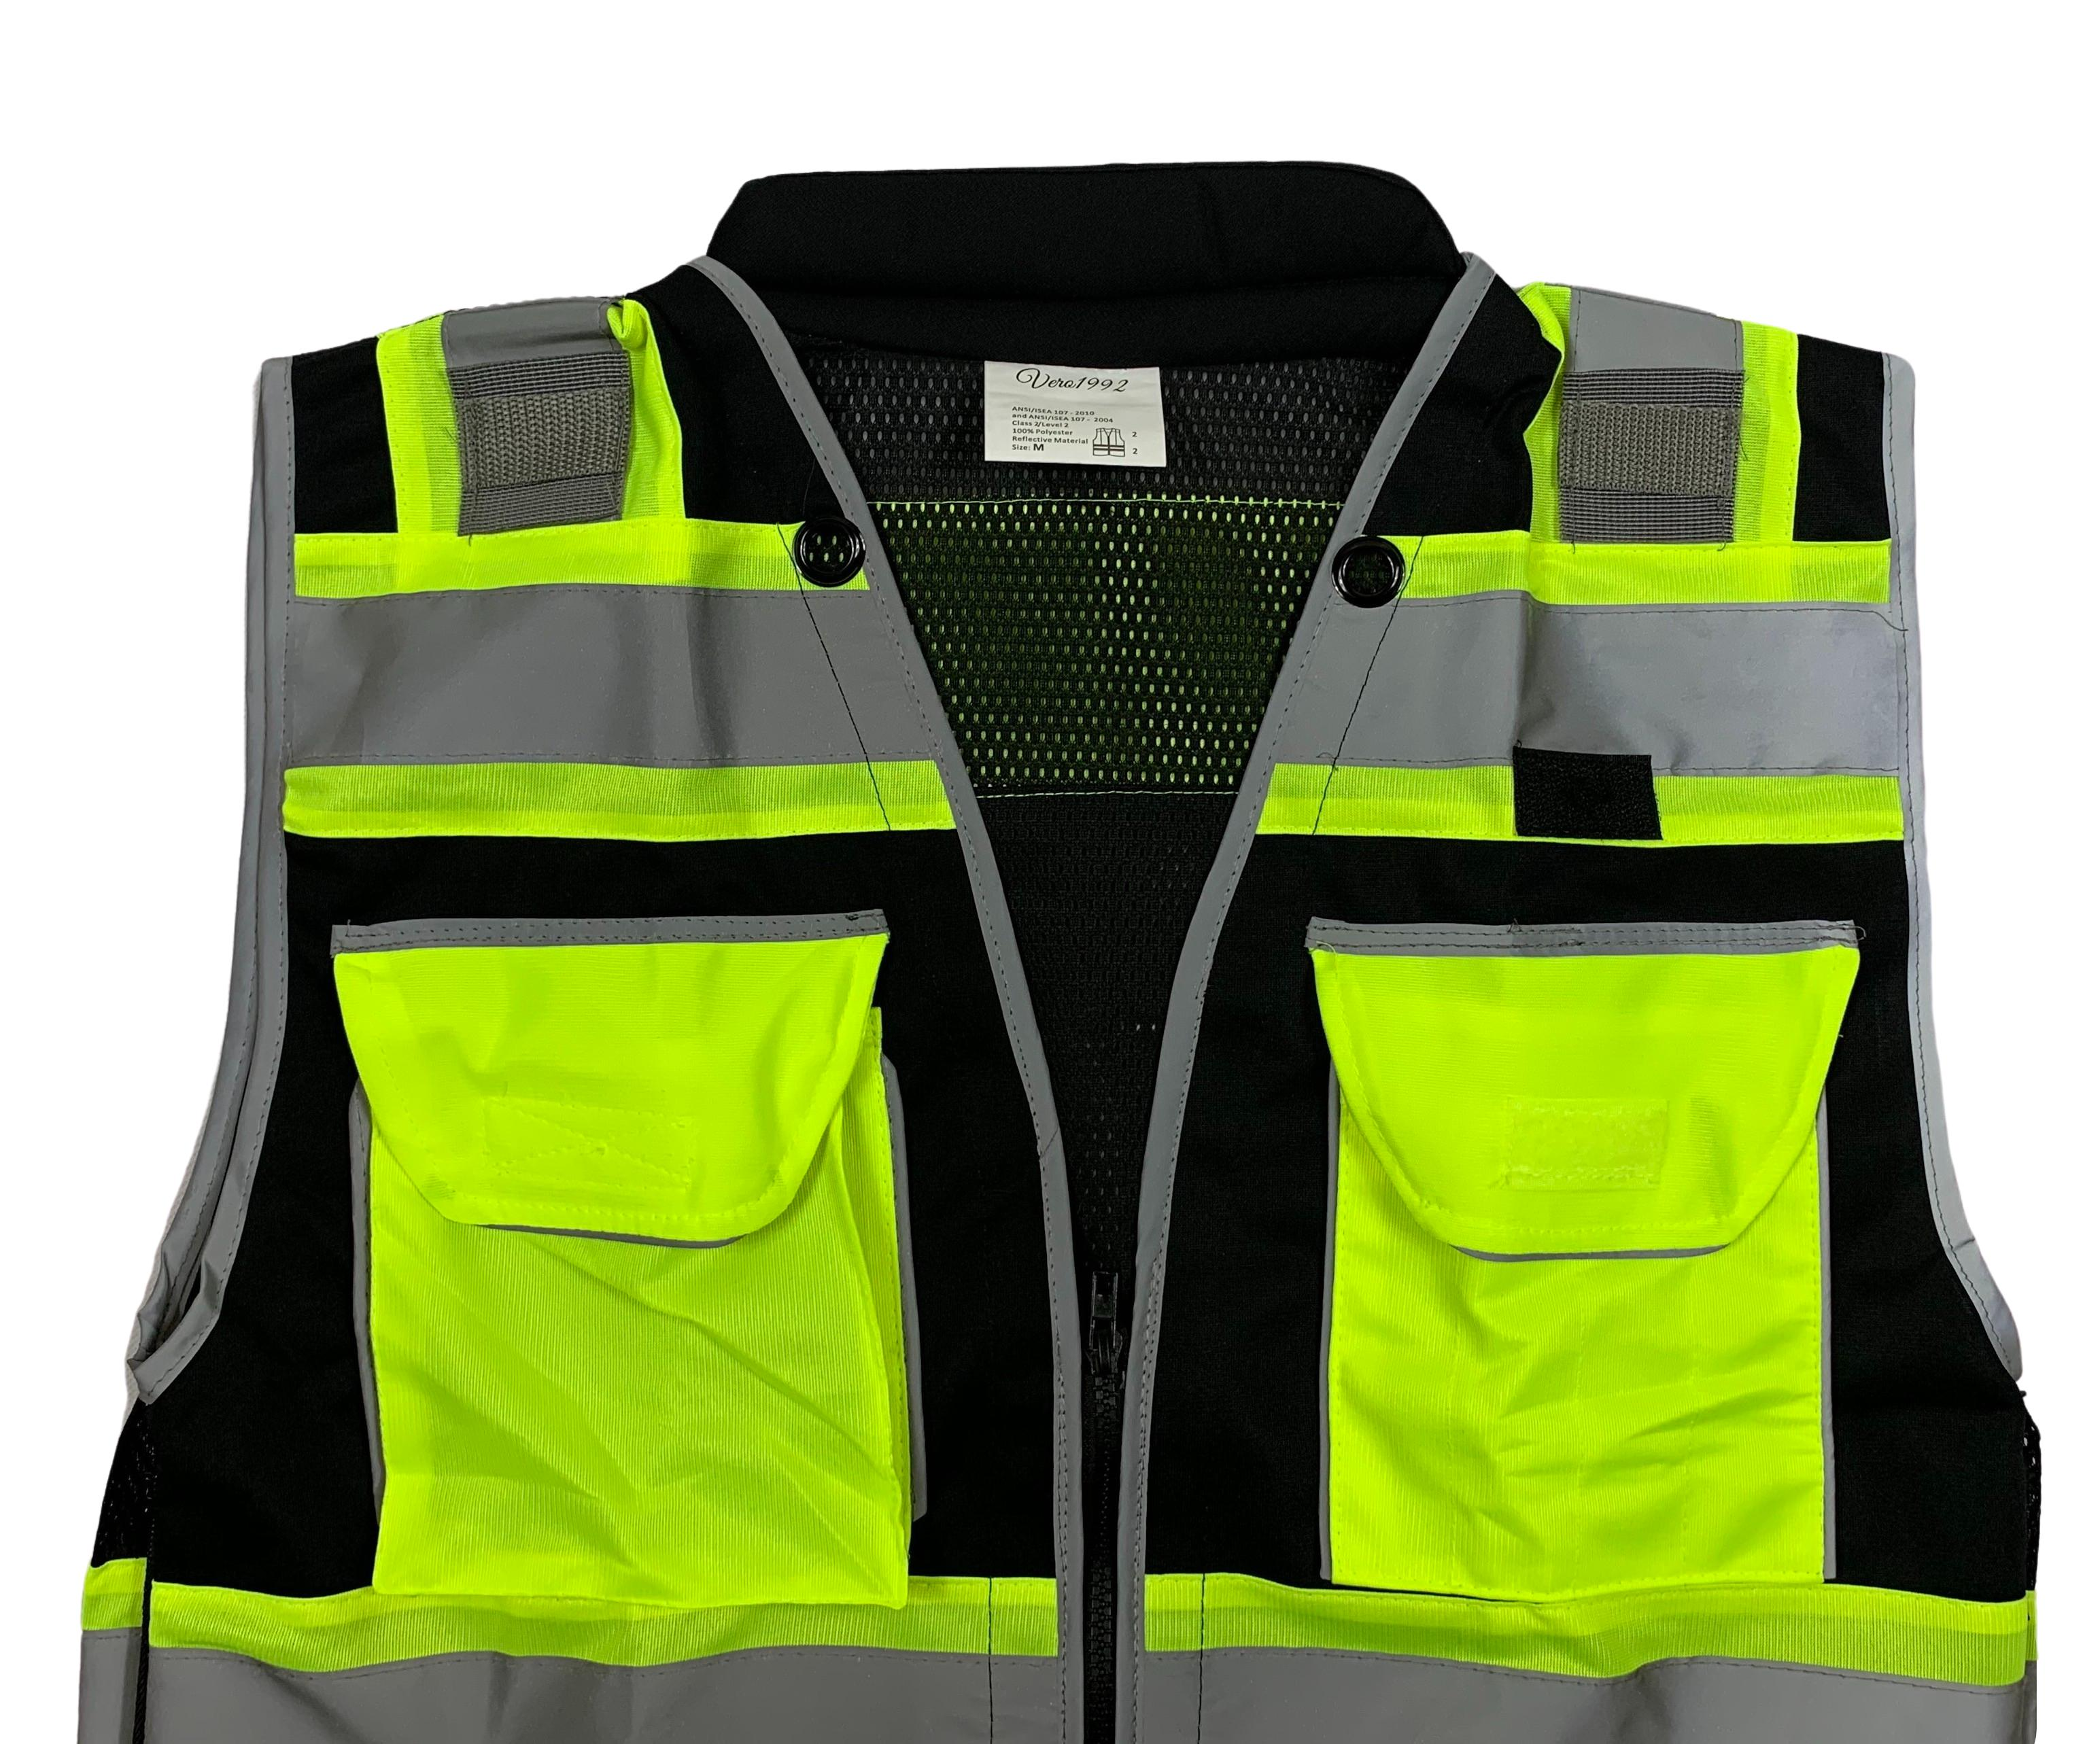 Medium, Black//Yellow Vero1992 E Engineer Safety Vest High Visibility Reflective Black Series Mesh with Zipper and pockets